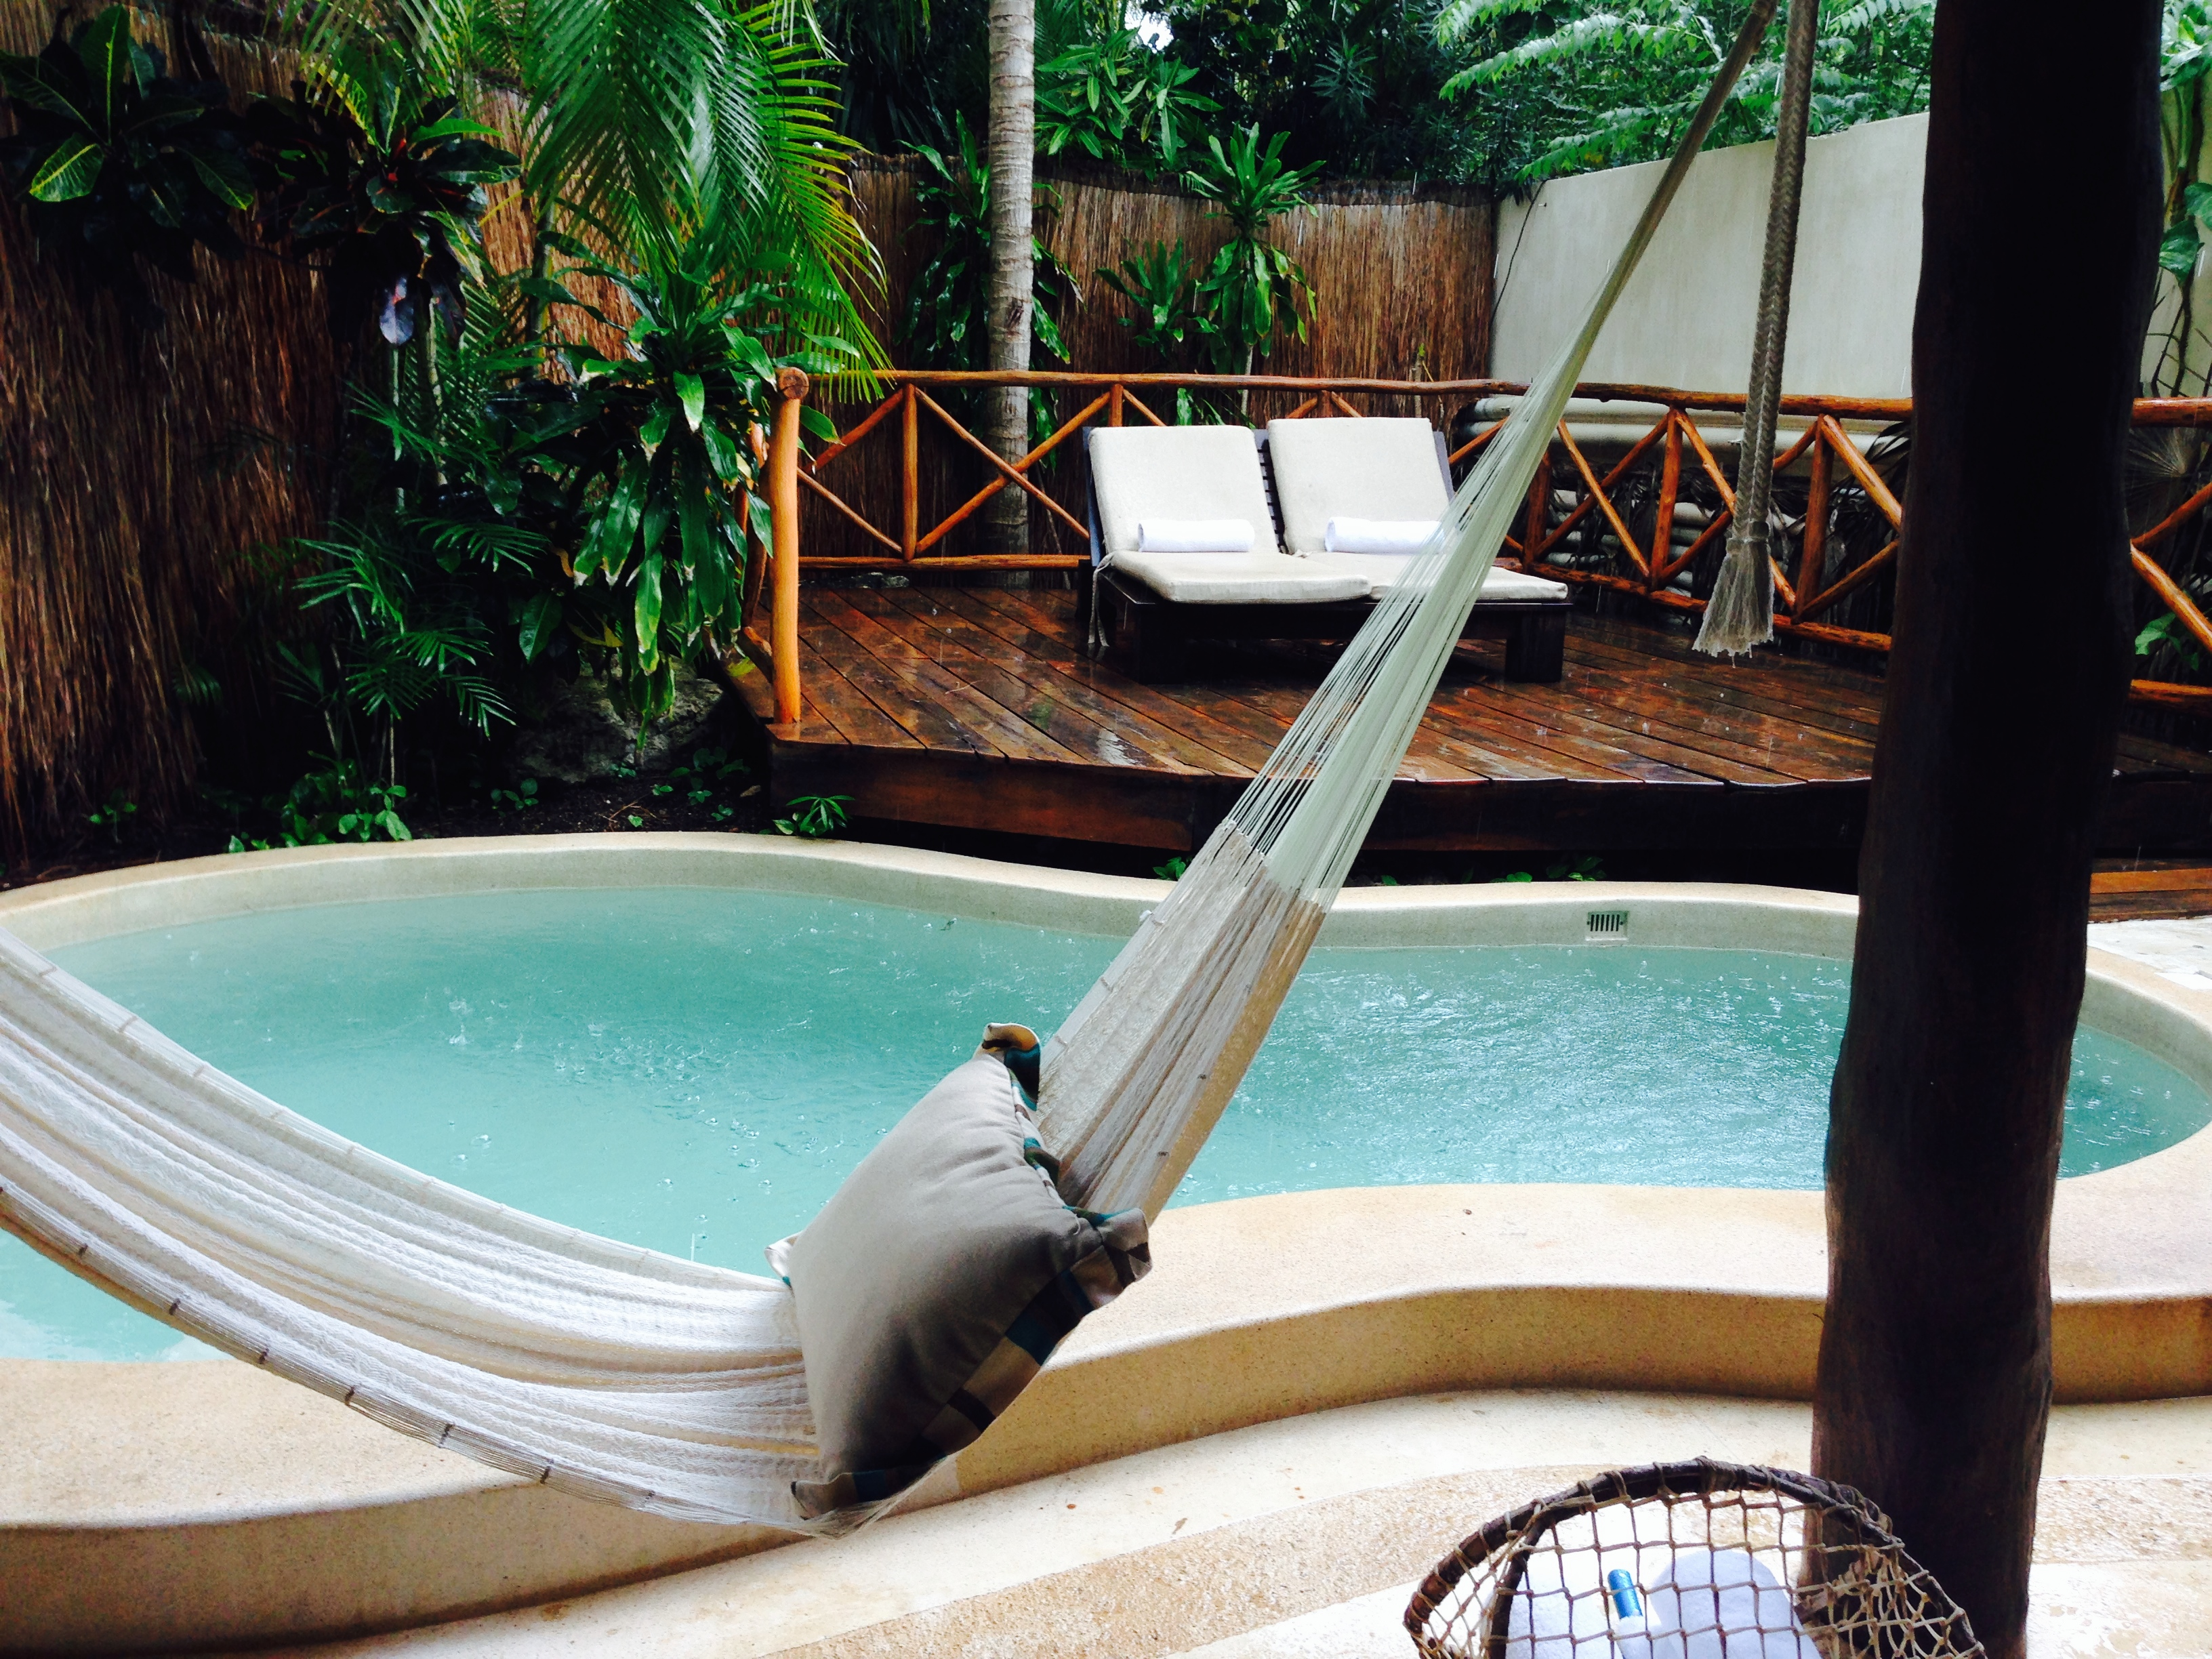 Private pool and hammock for lounging at our room.